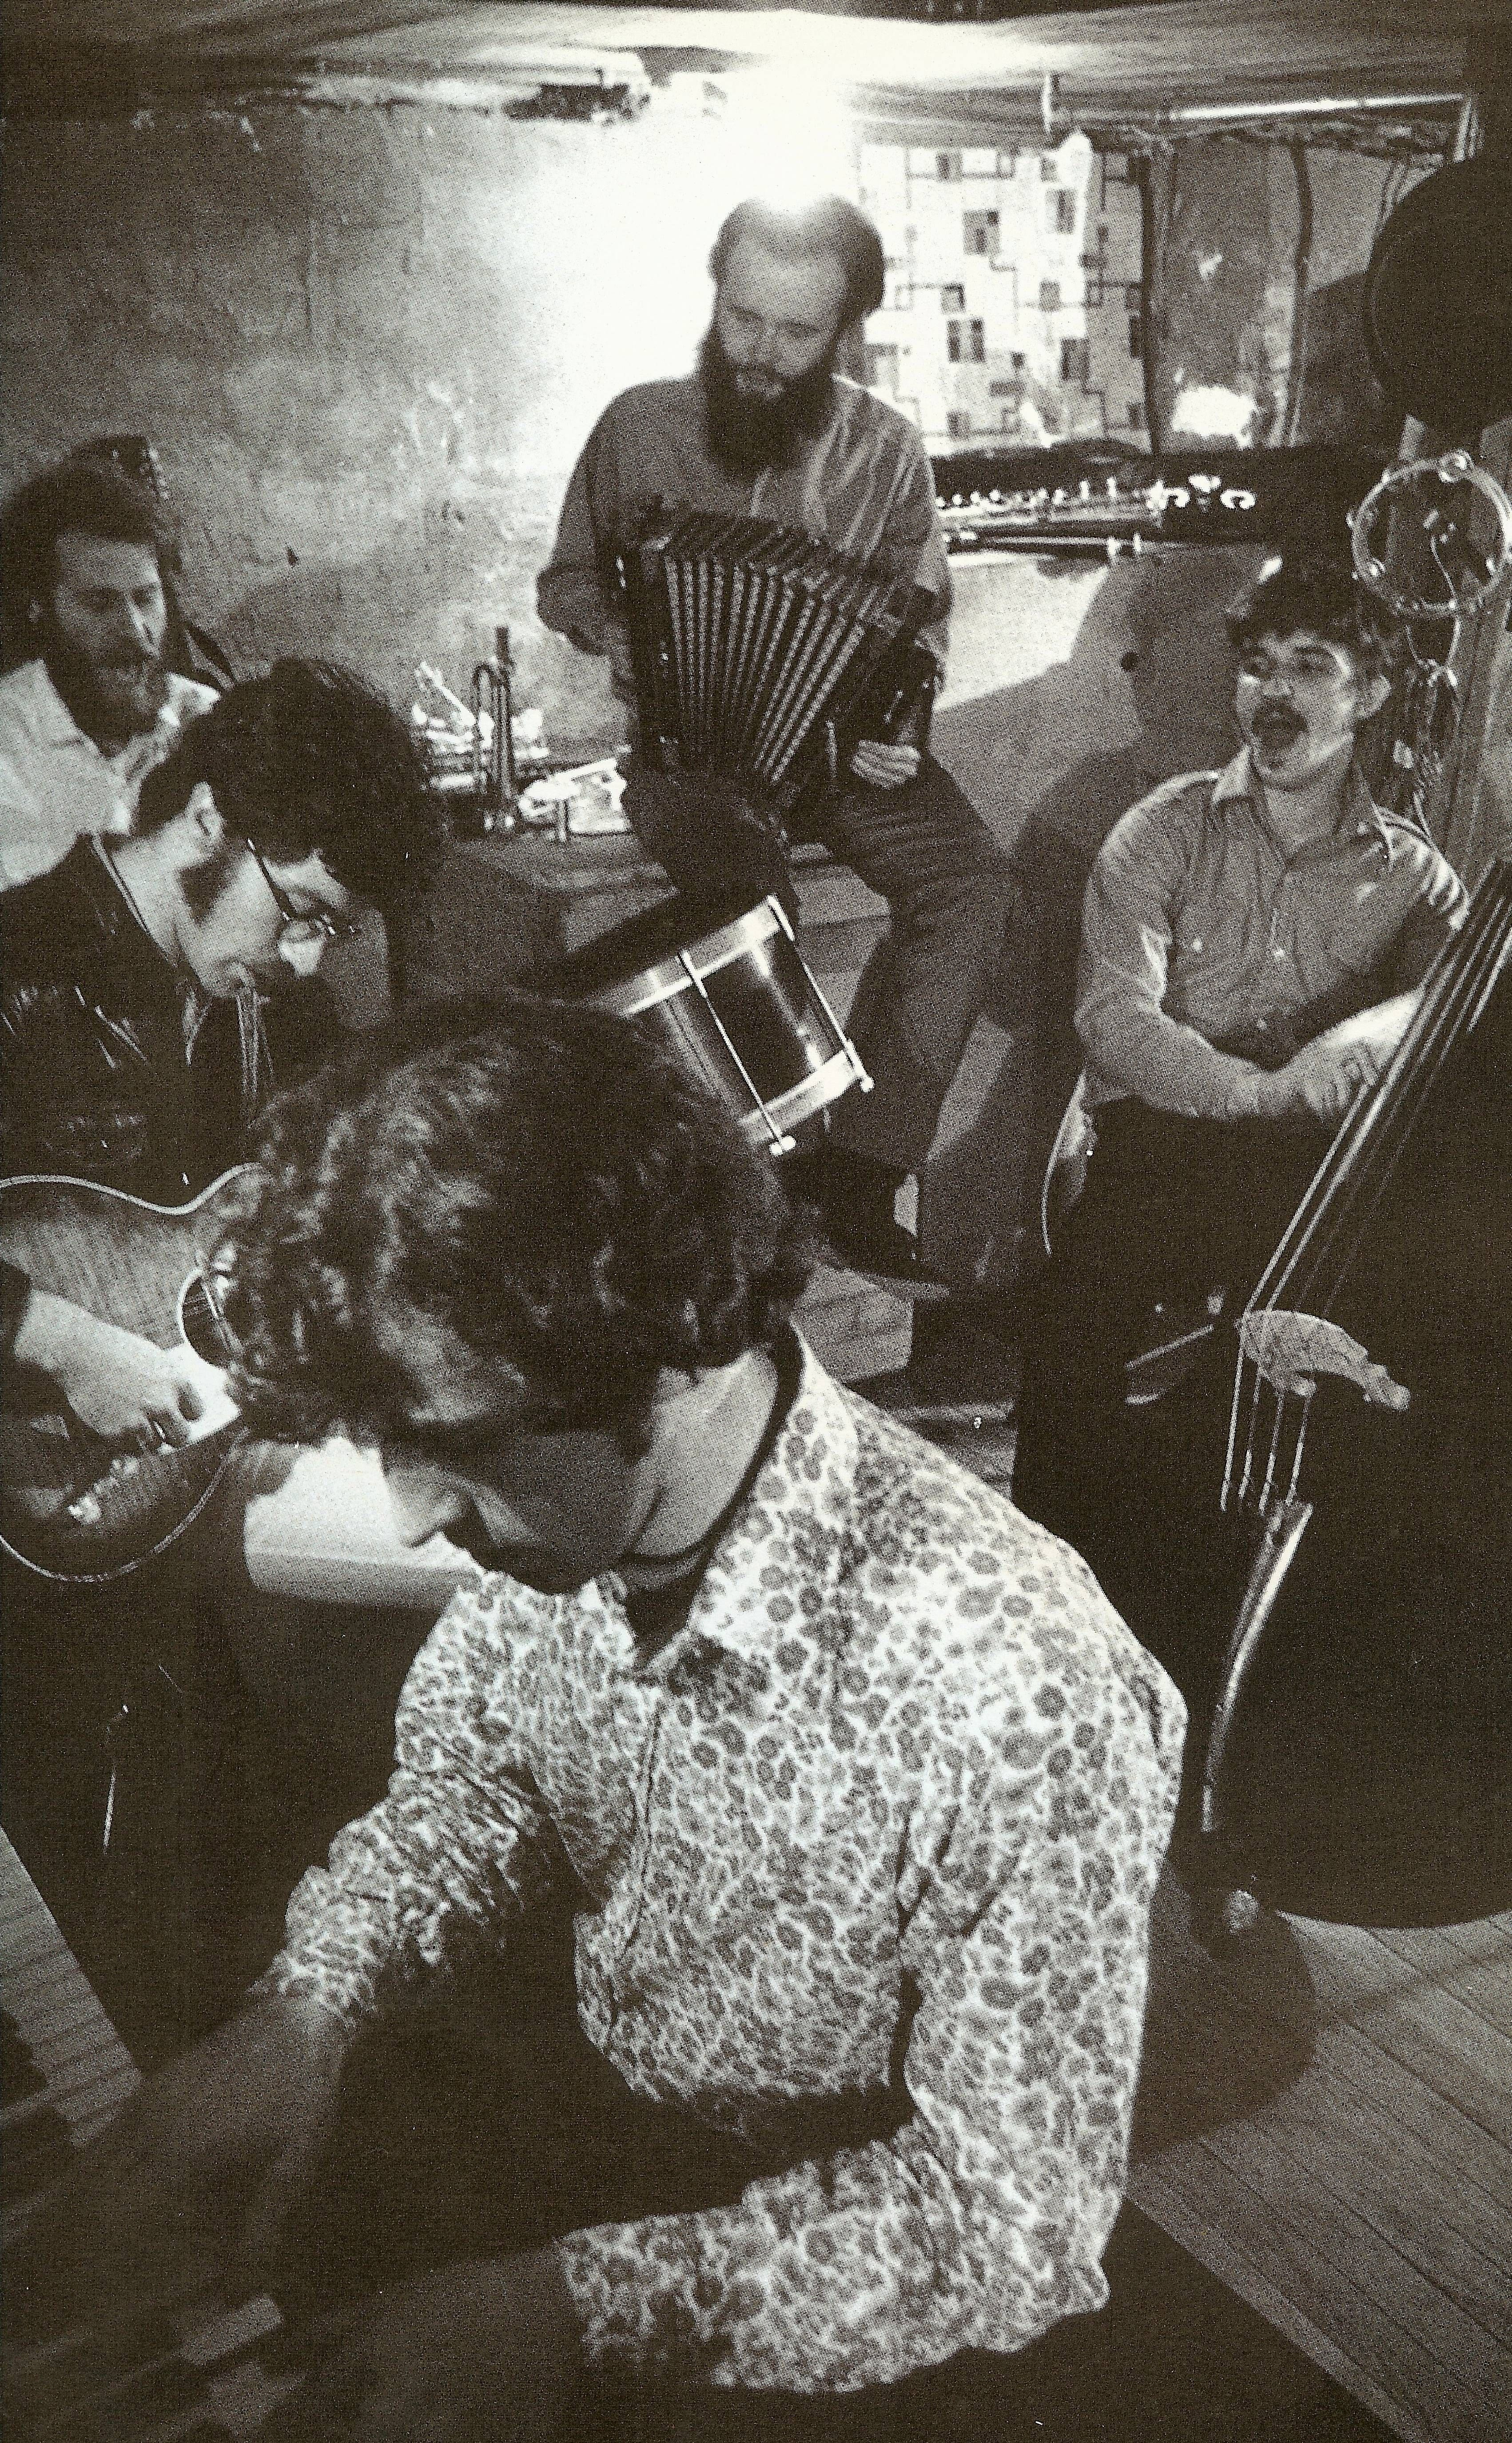 The Band hanging out Rick Danko, Levon Helm, Garth